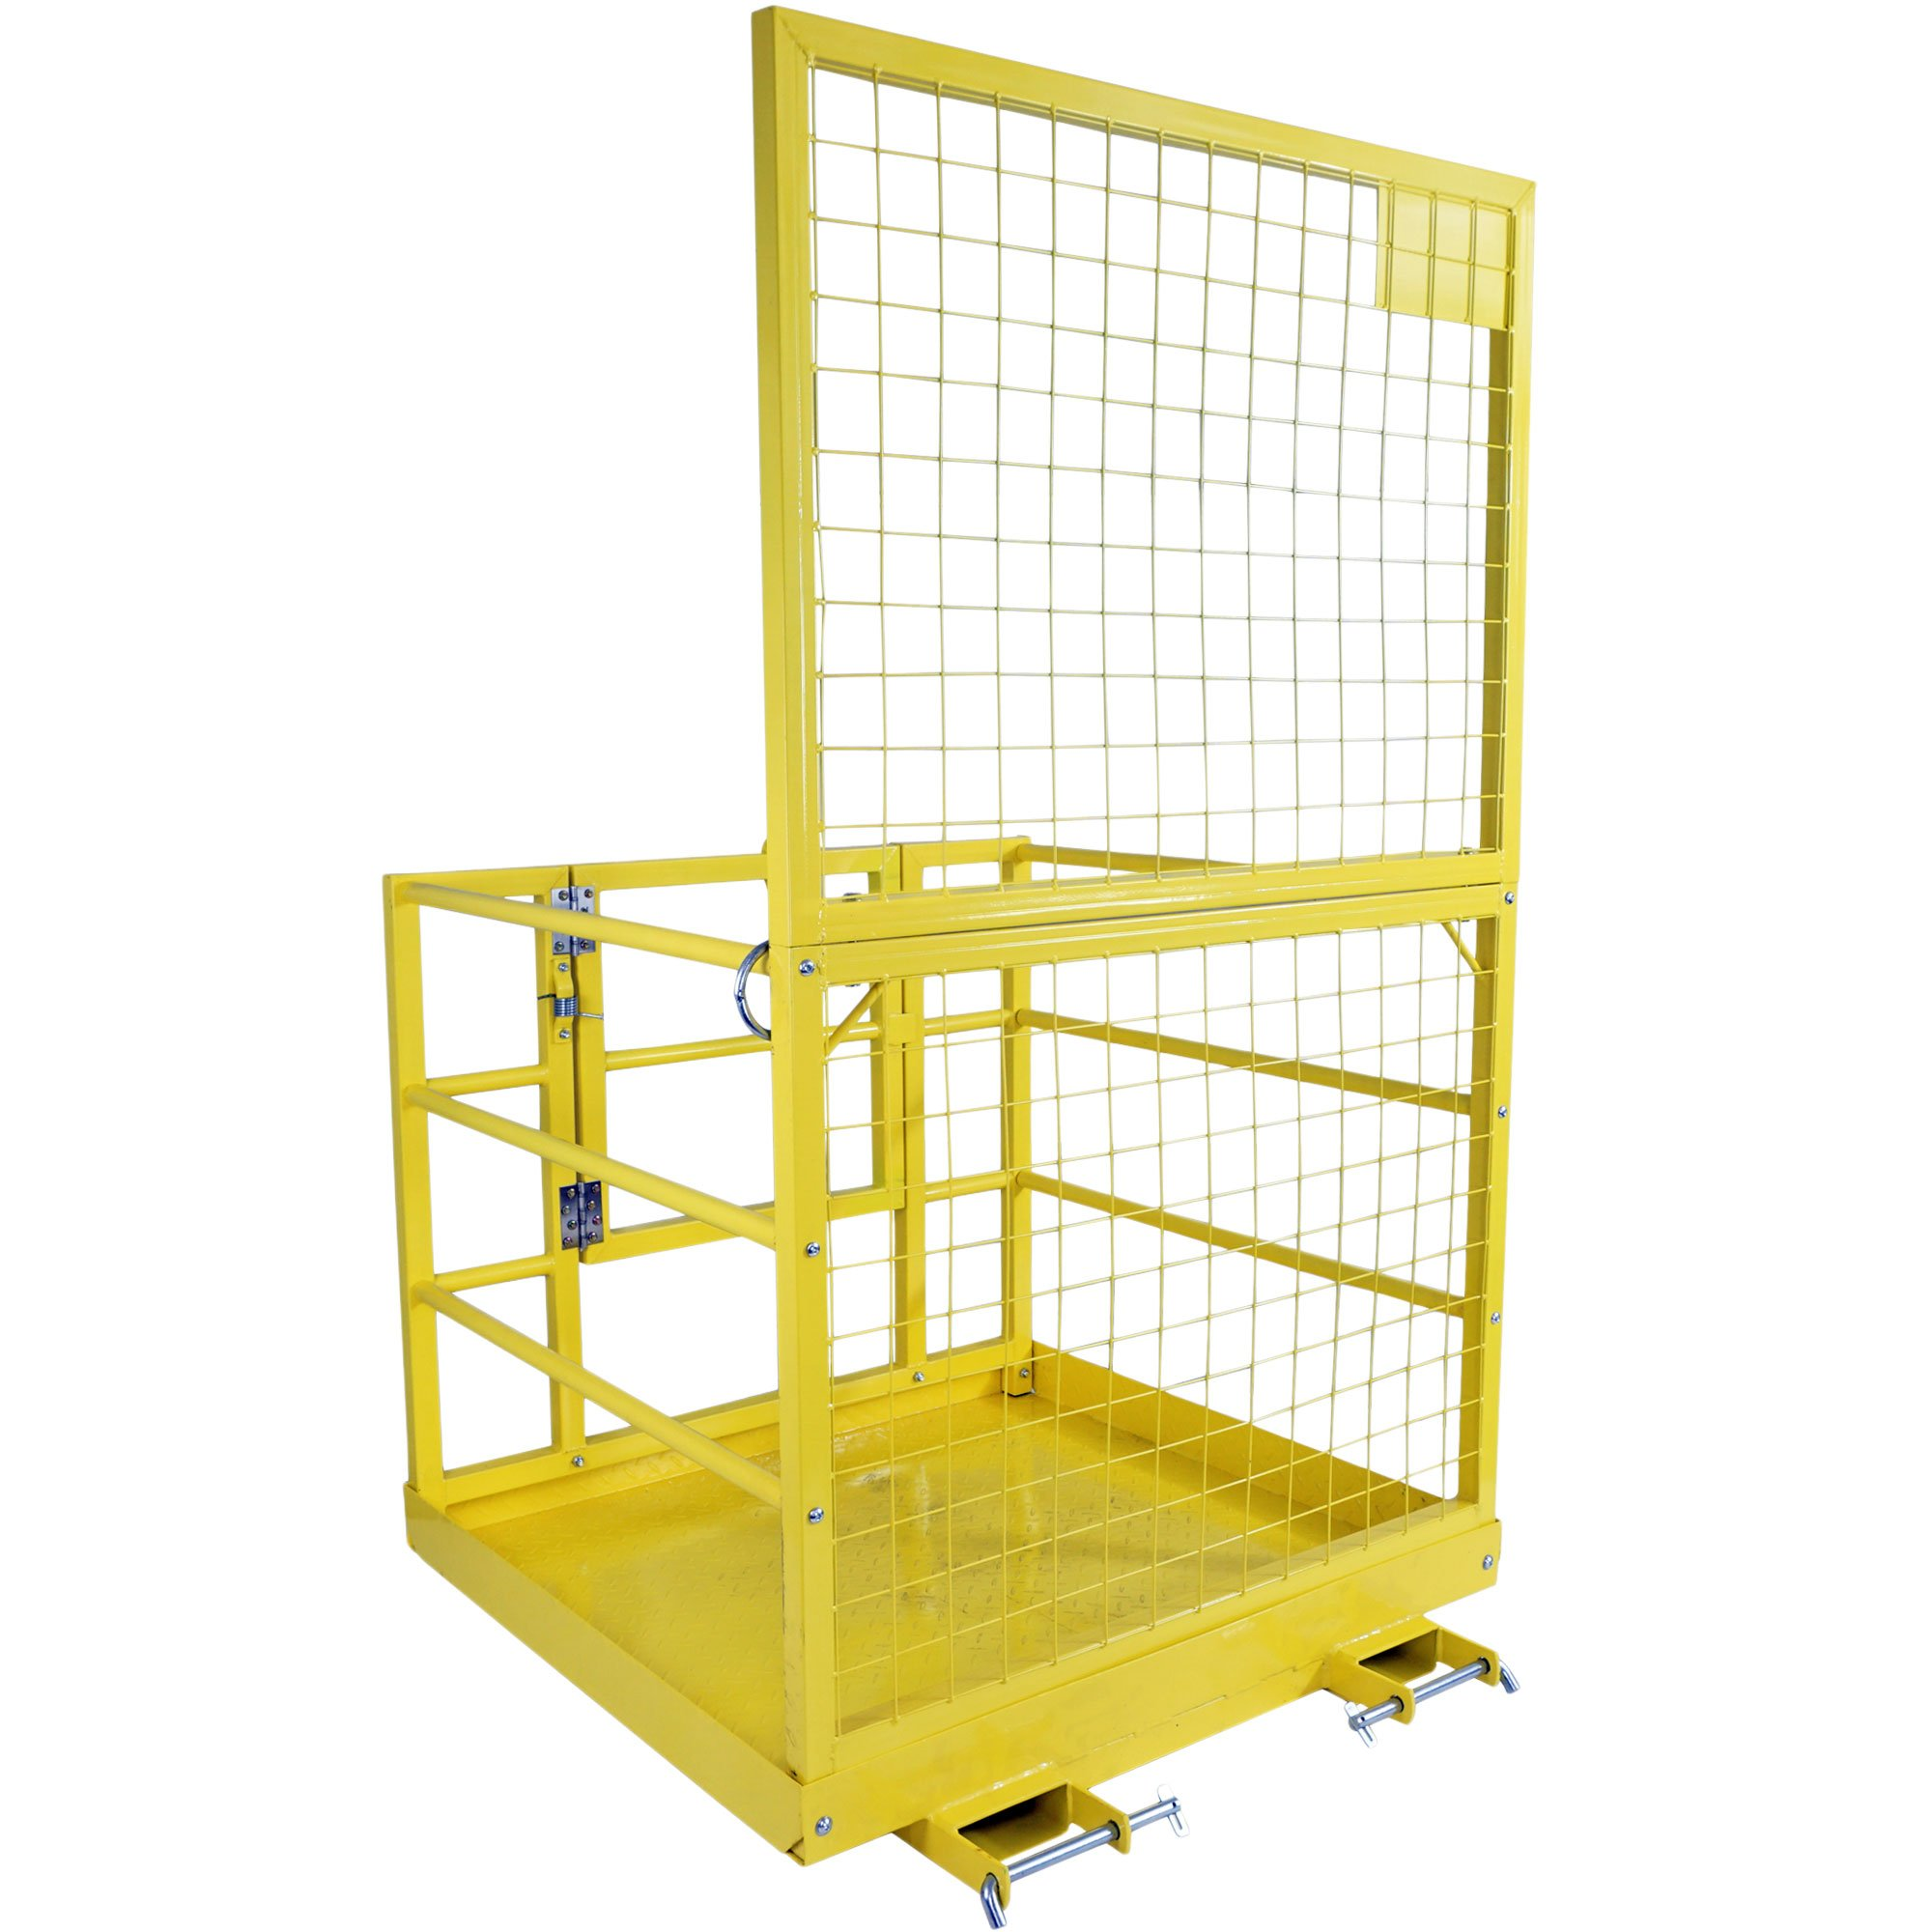 Forklift Safety Cage Work Platform Lift Basket Aerial Fence Rails Yellow 2 man by Titan Attachments (Image #5)